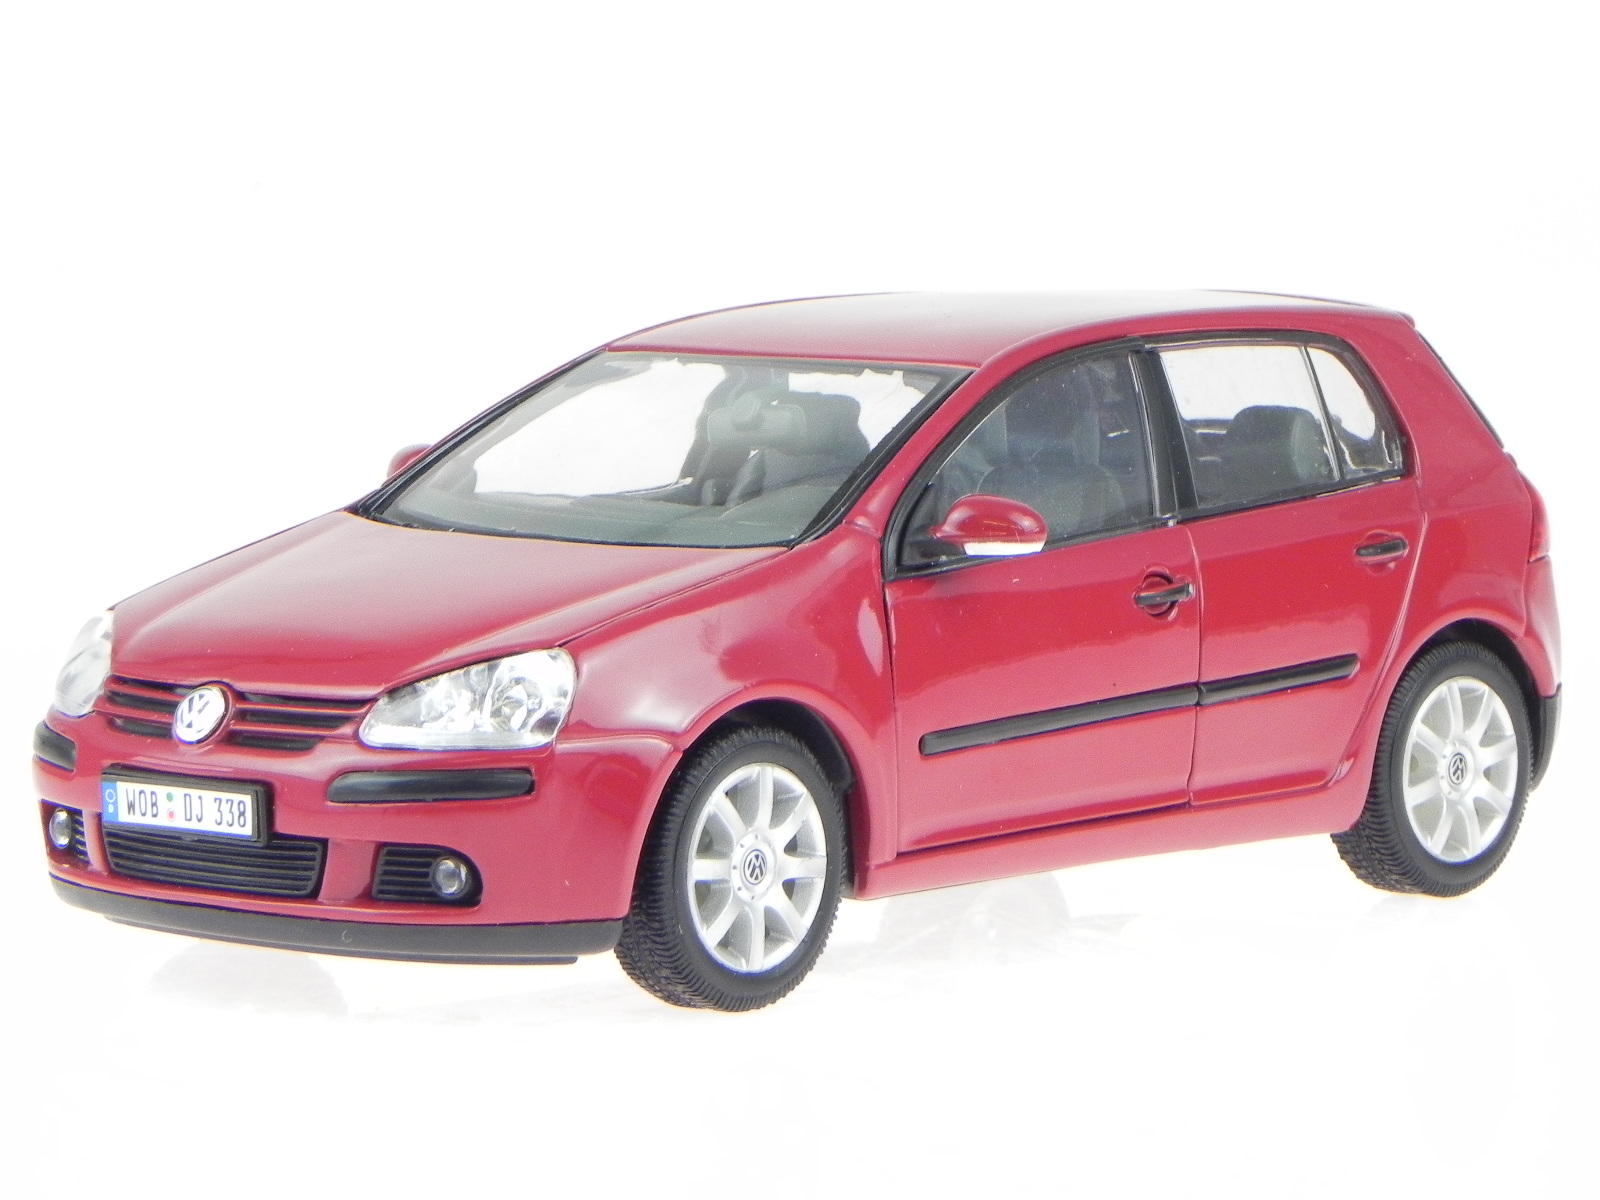 vw golf 5 4 t rer rot modellauto welly 1 24 ebay. Black Bedroom Furniture Sets. Home Design Ideas